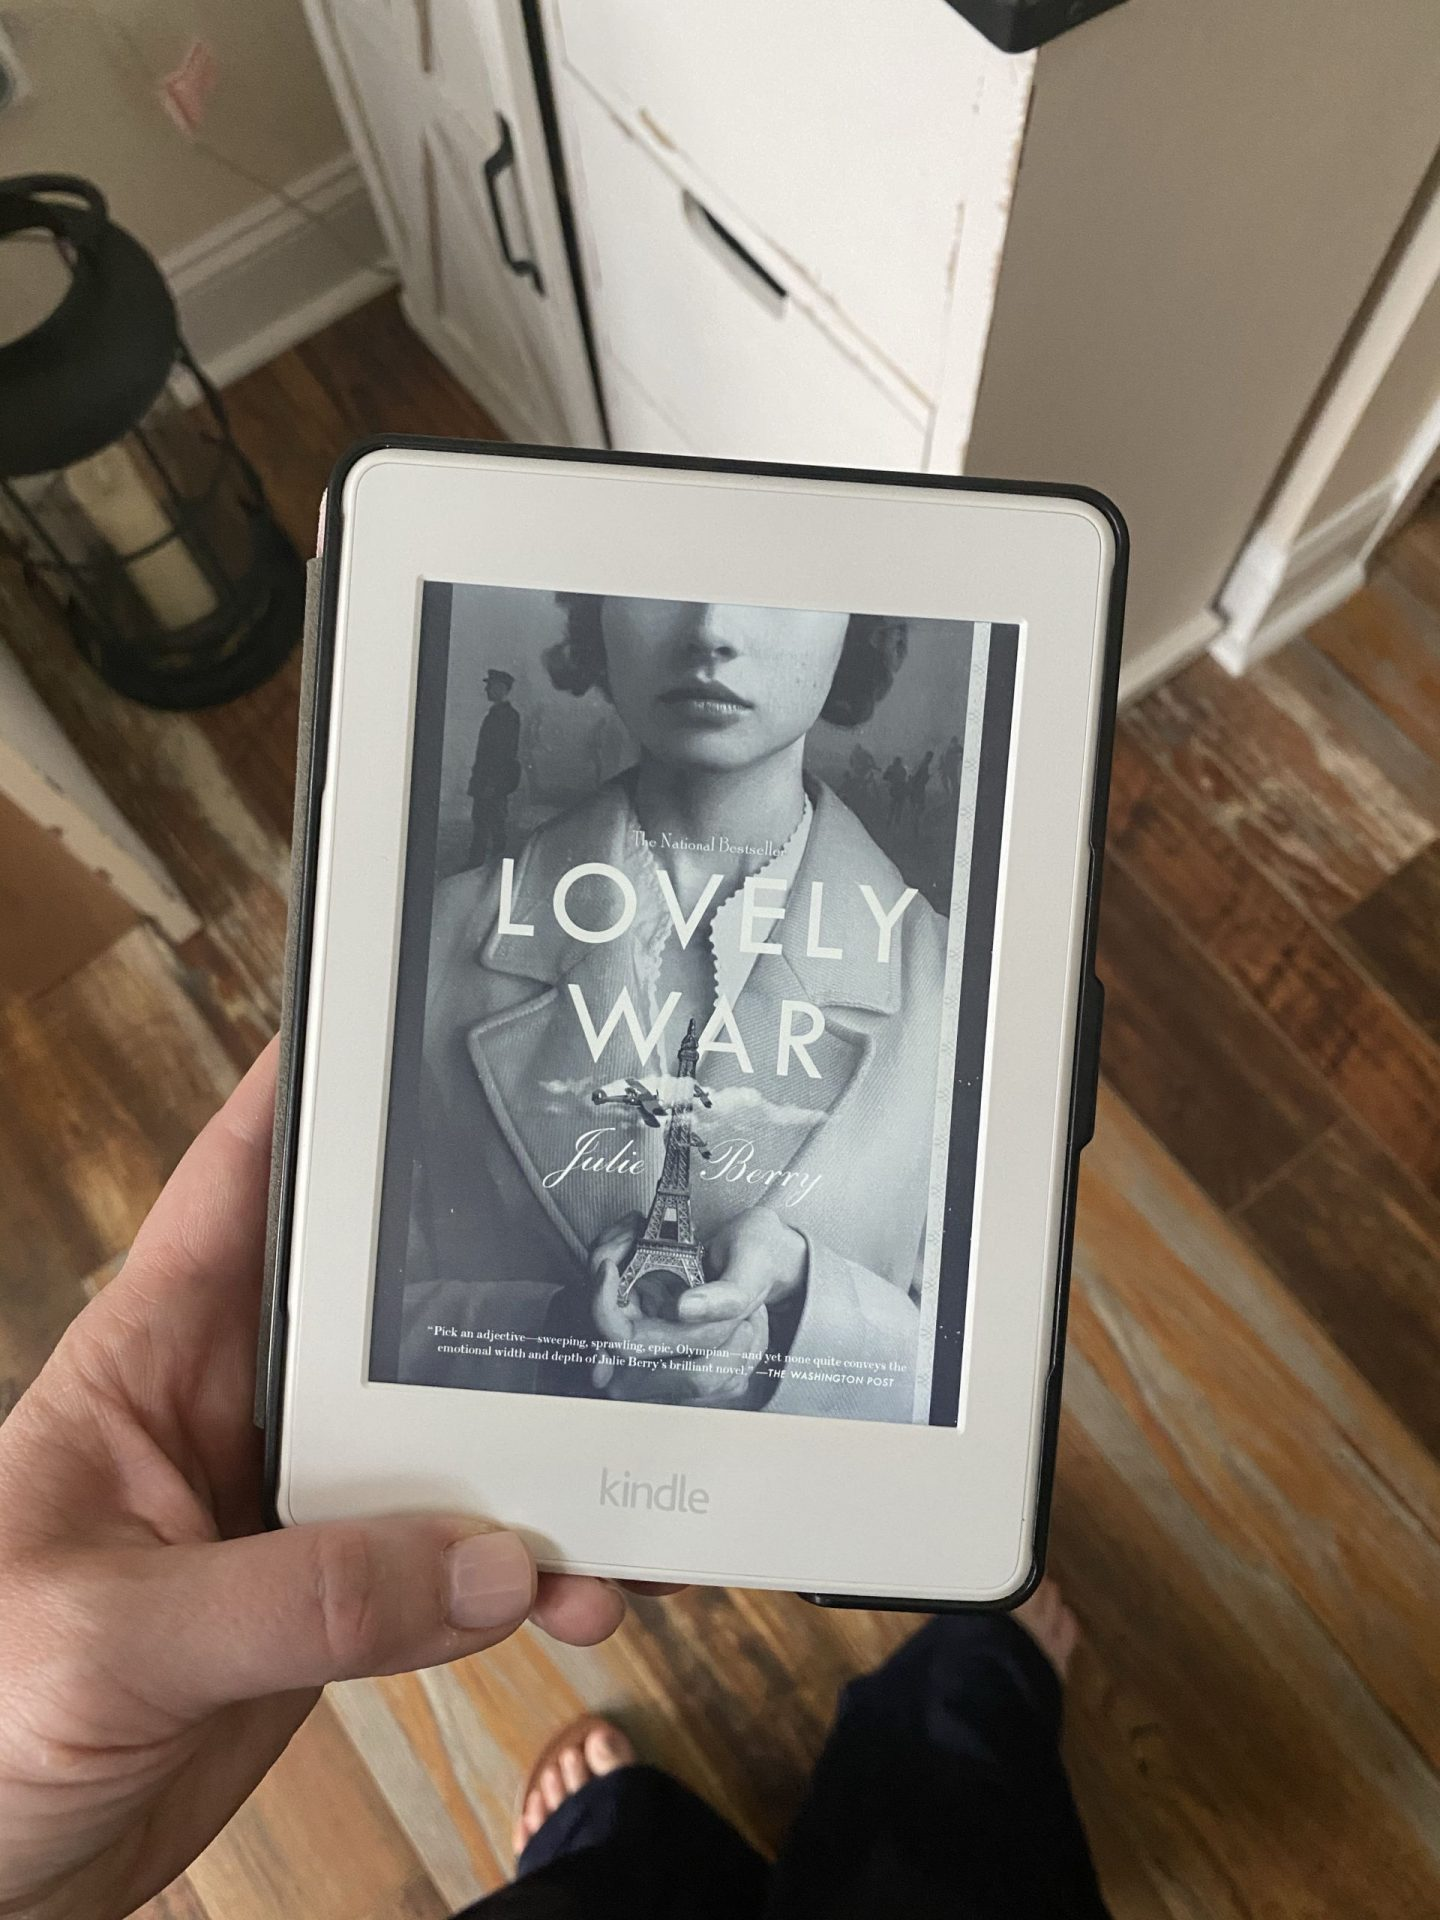 NC blogger Rebecca Lately shares her review of Lovely War by Julie Berry. A sweeping story about love and war, it's a must-read!